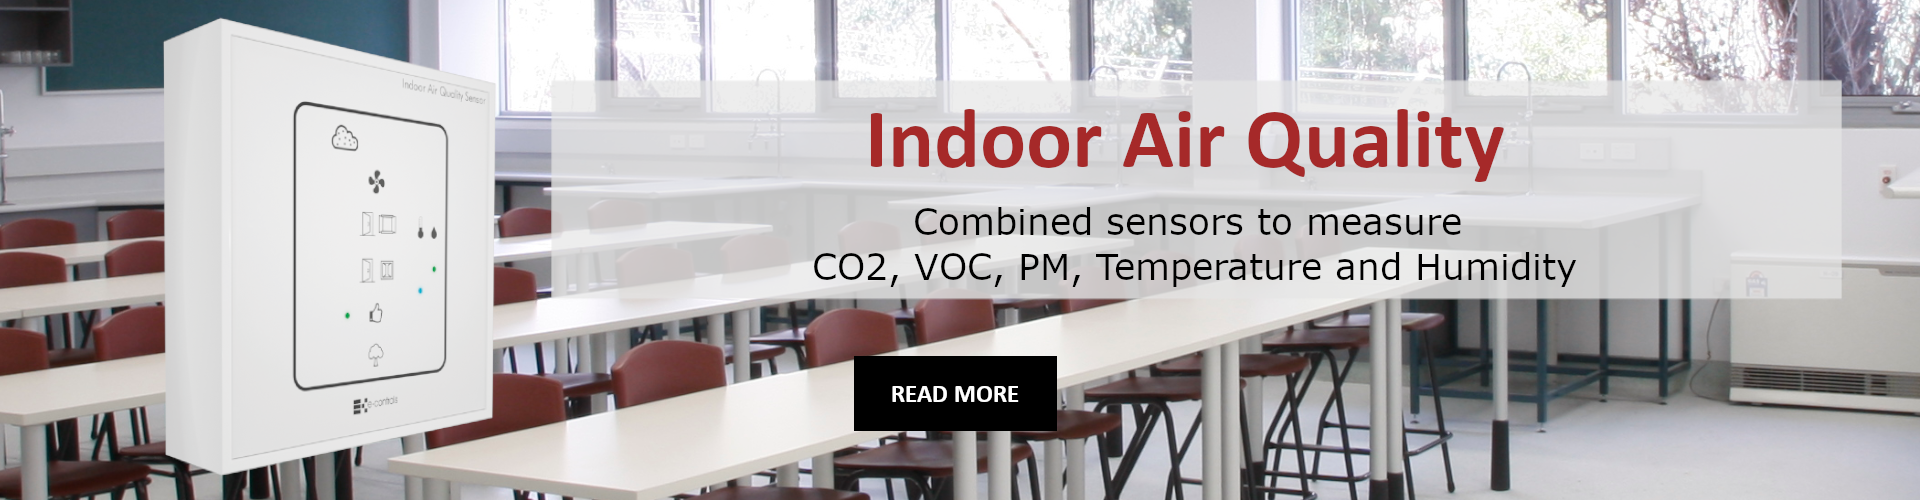 Indoor Air Quality Combined sensors to measure CO2, VOC, PM, Temperature and Humidity